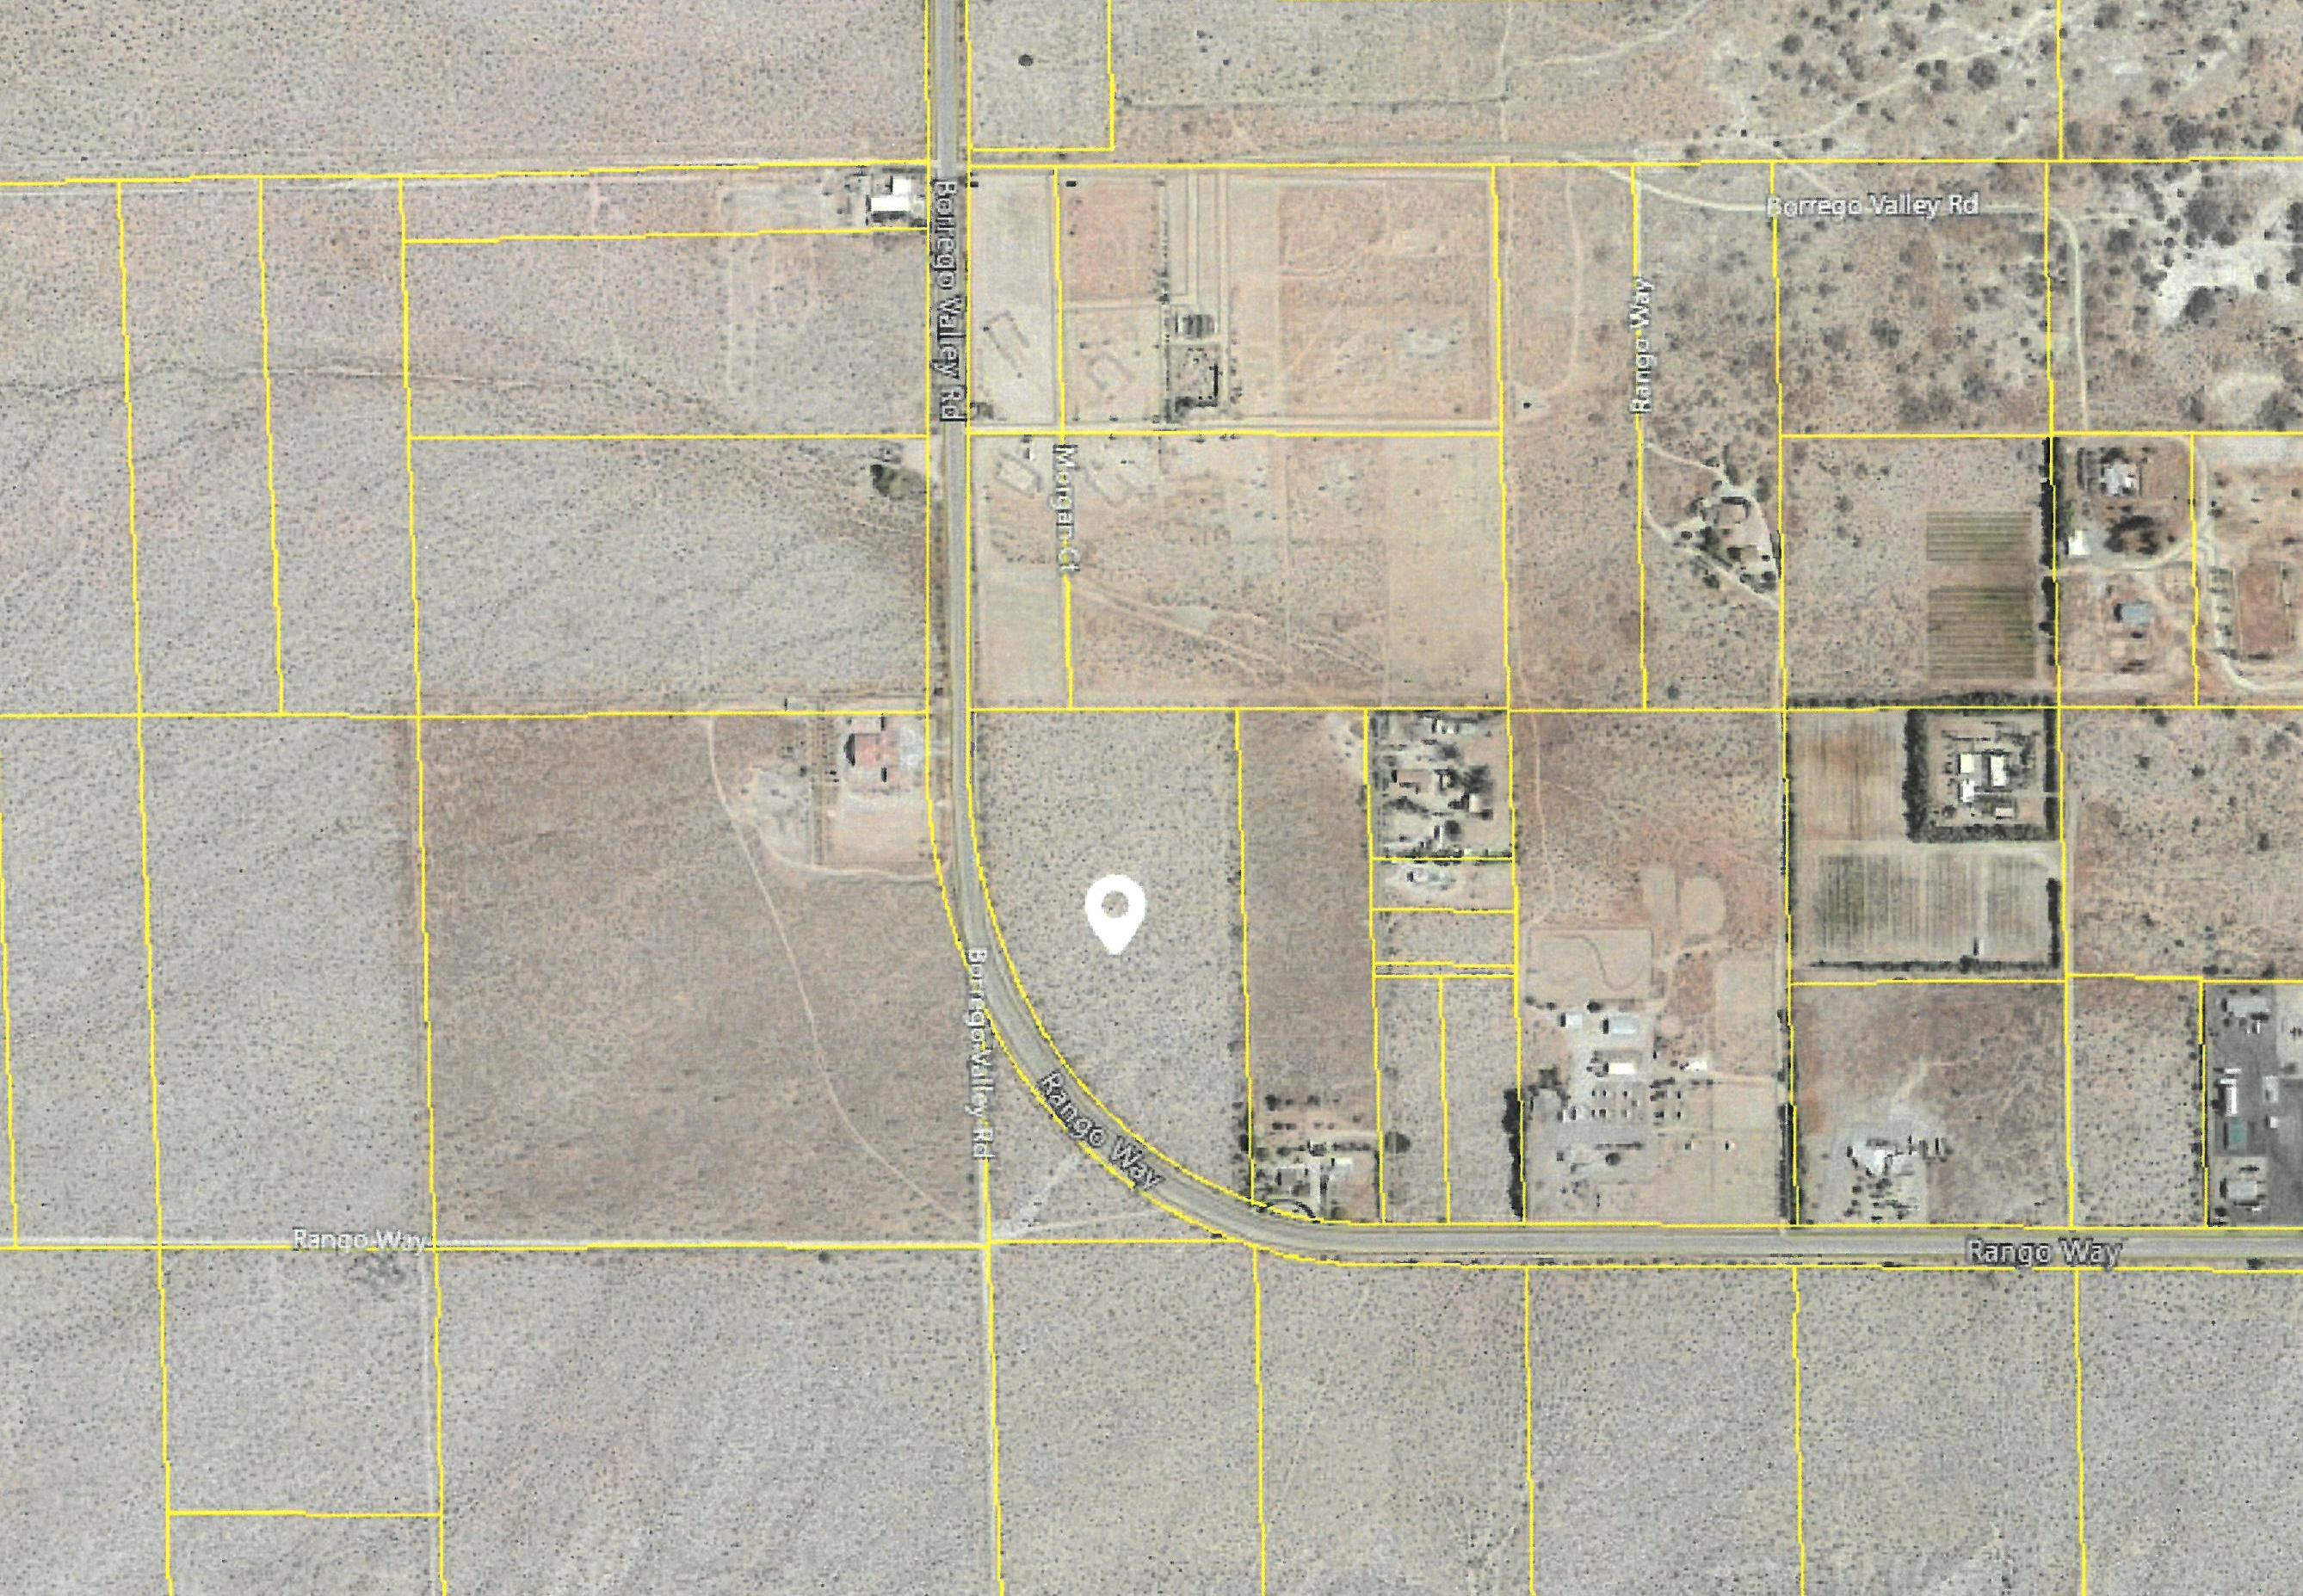 Land for sale in 18.48 acres Borrego Valley Road, Borrego Springs, California ,92004